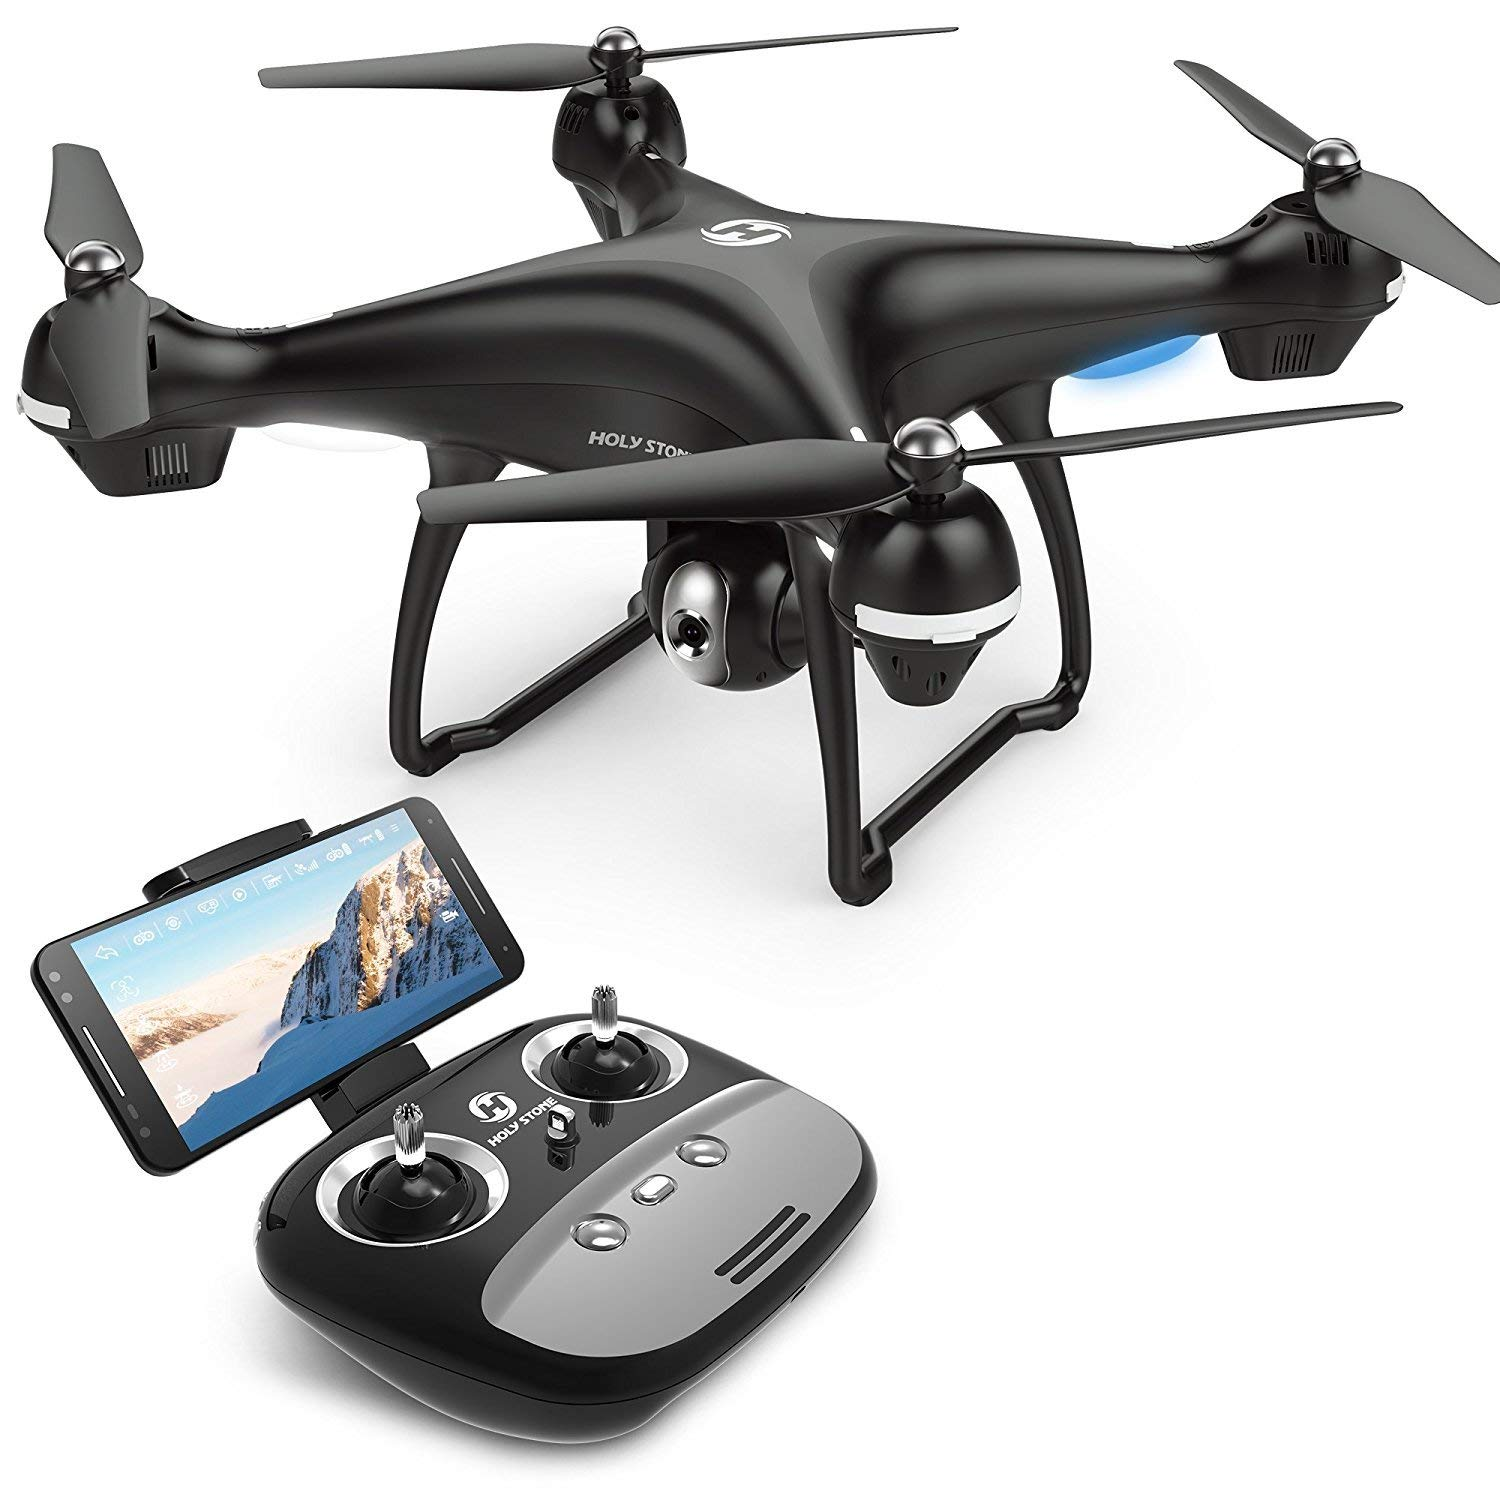 Holy Stone GPS FPV RC Drone HS100 with Camera Live Video 1080p